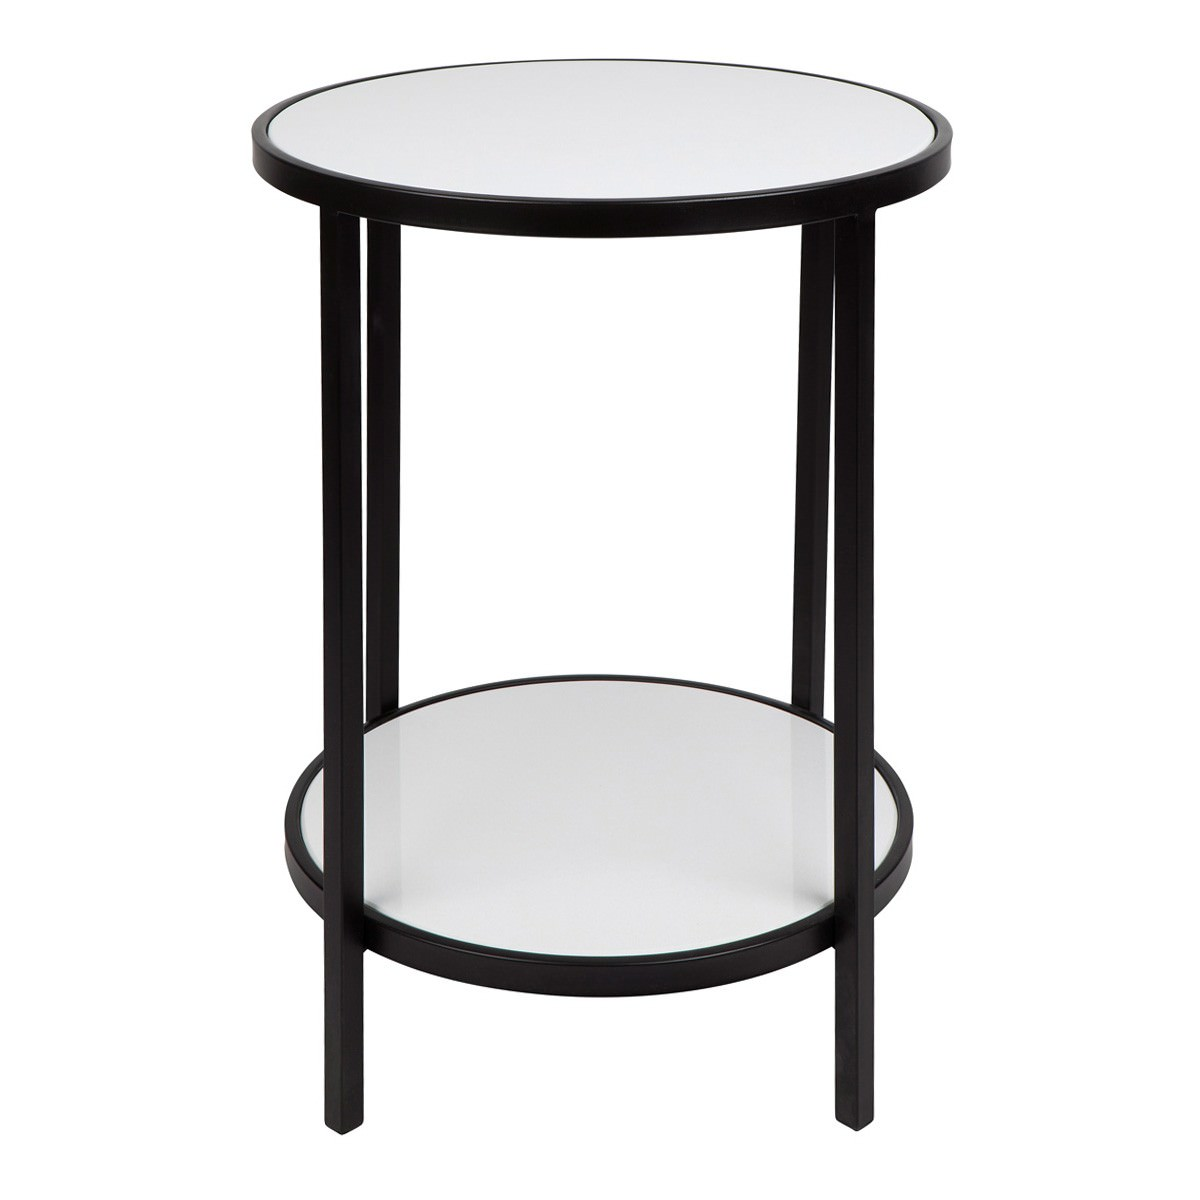 Cocktail Stone Top Iron Round Side Table Black